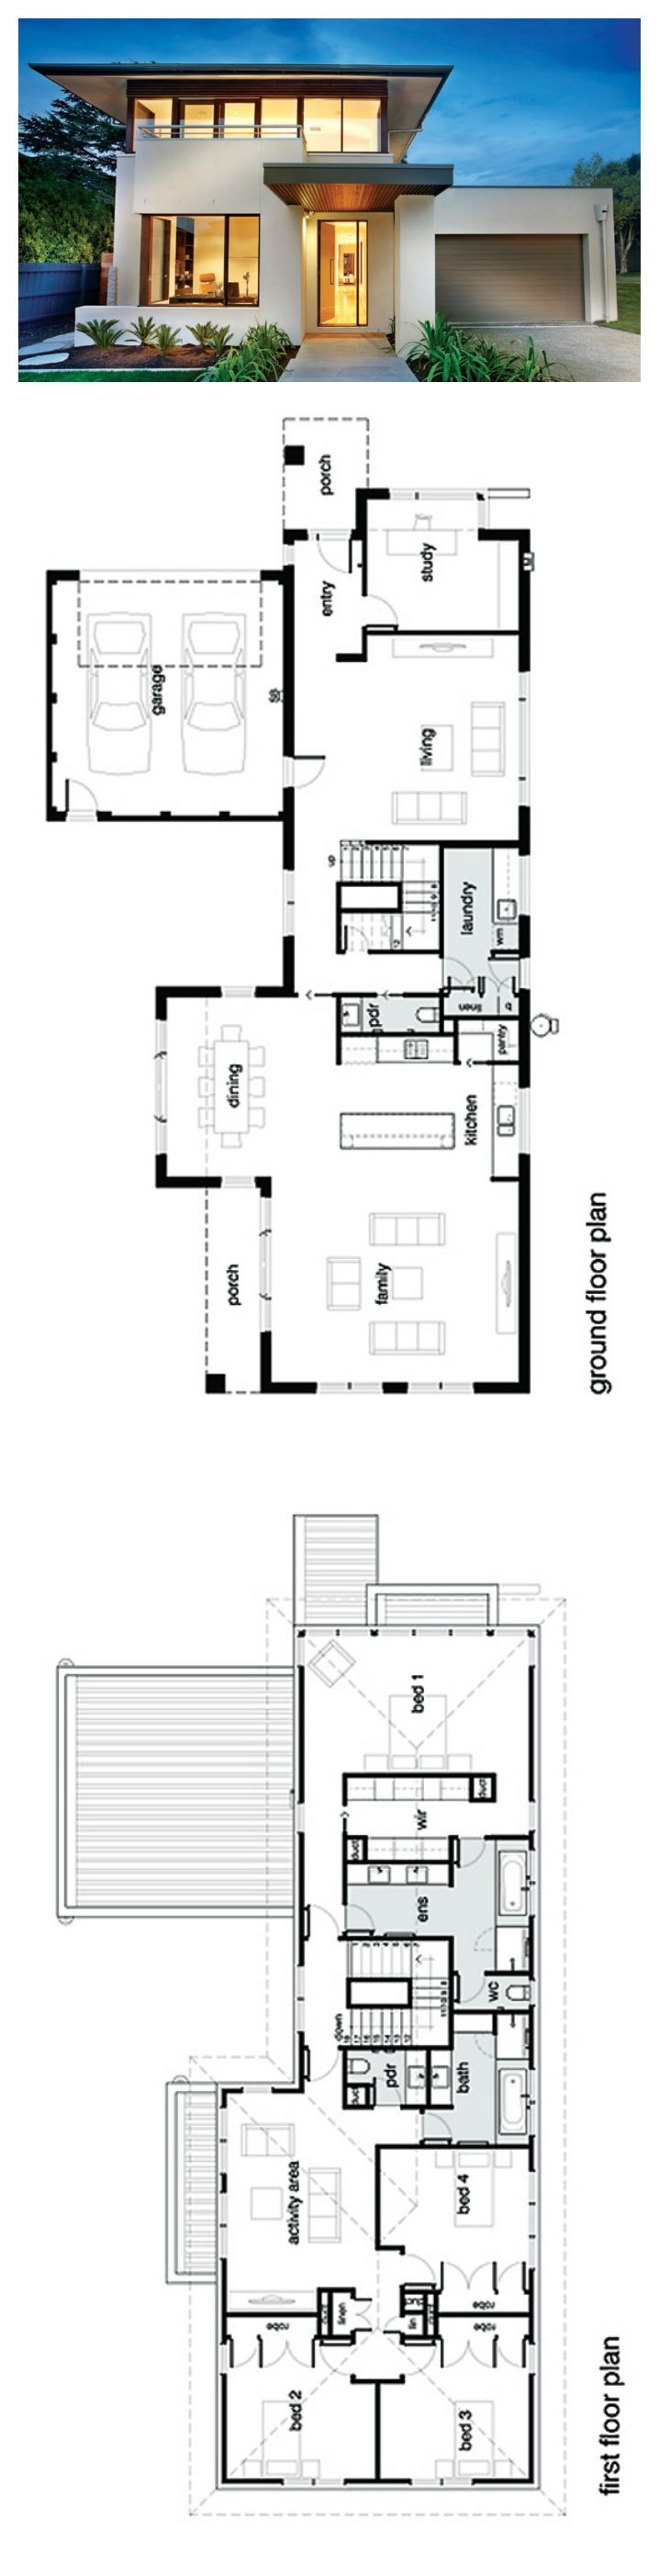 Modern 4 Bedroom House Plans 17 Best Ideas About Modern House Plans On Pinterest Modern House